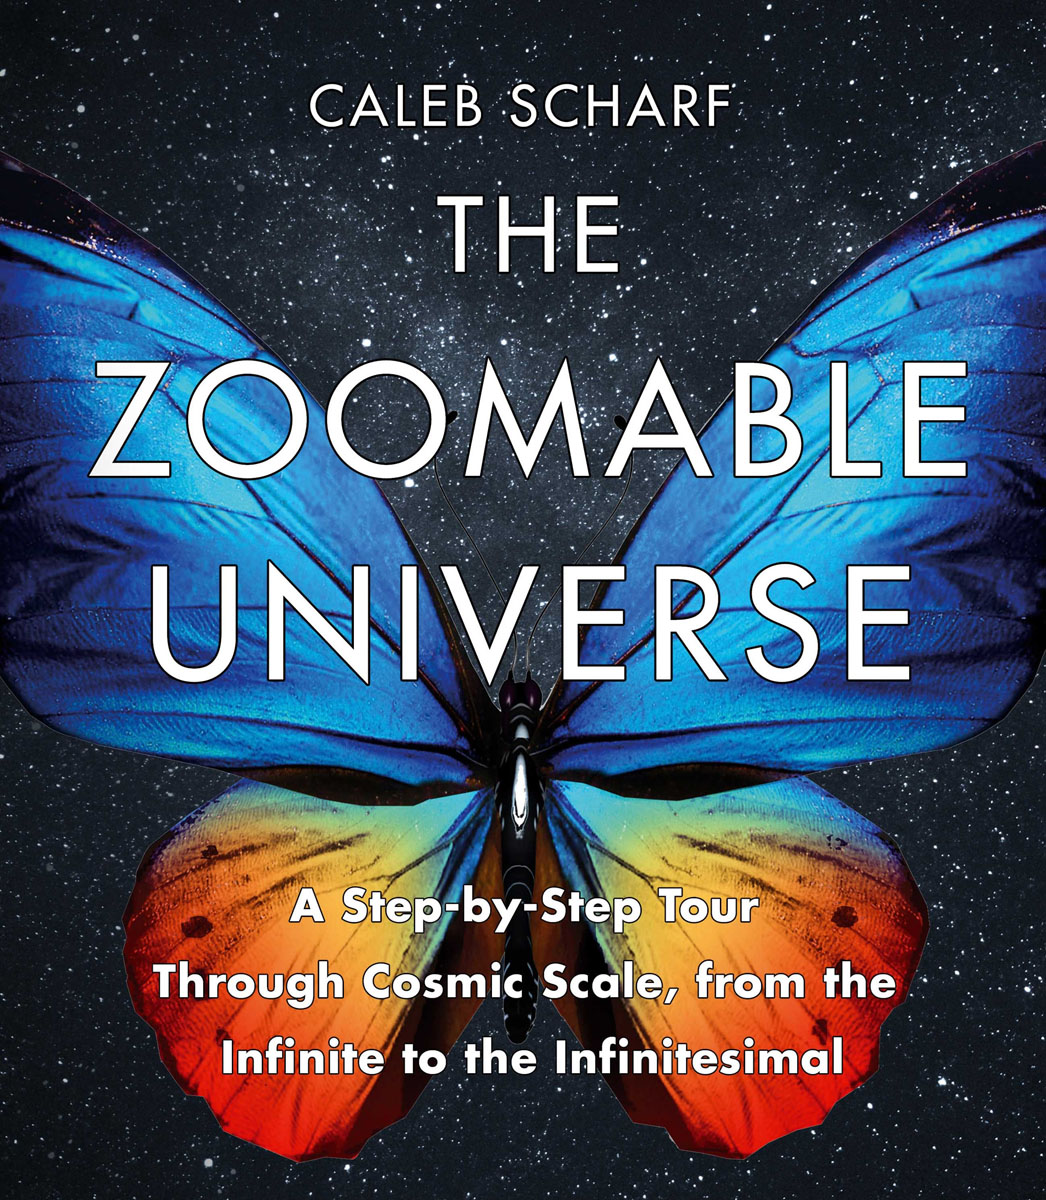 The Zoomable Universe: A Step-by-Step Tour Through Cosmic Scale, from the Infinite to the Infinitesimal the zoomable universe a step by step tour through cosmic scale from the infinite to the infinitesimal